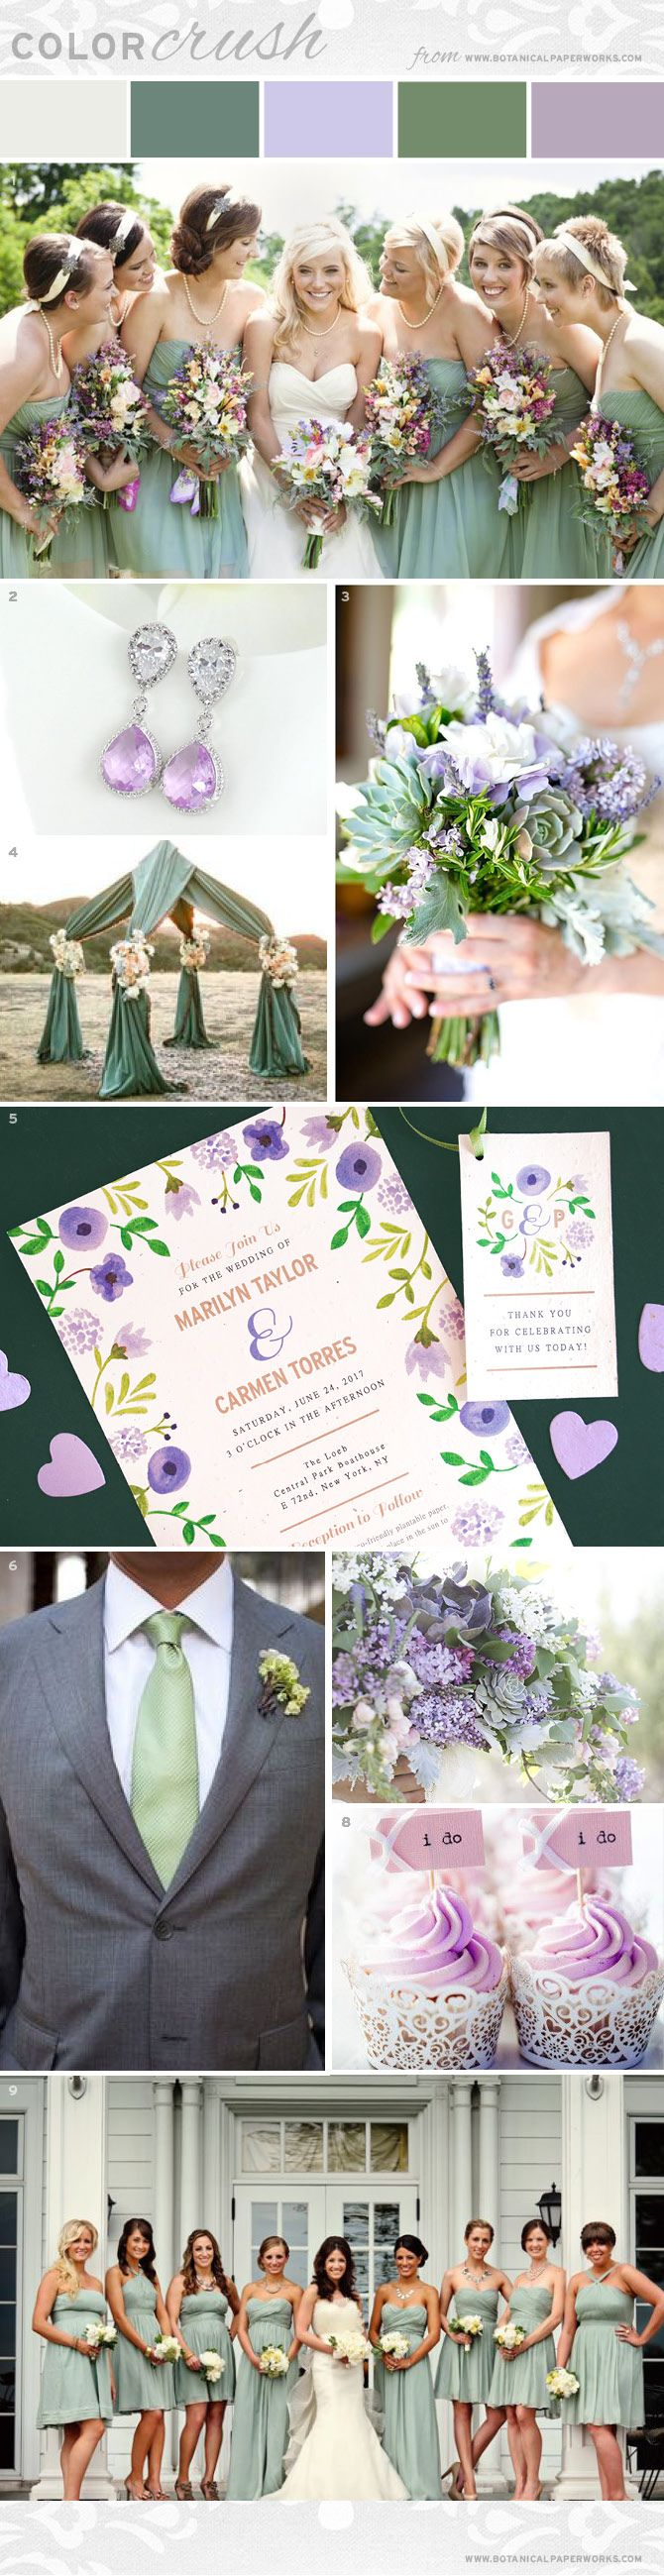 25 swoon worthy spring amp summer wedding bouquets tulle amp chantilly - Elegant And Wildly Pretty The Combination Of Rustic Sage Playful Lilac And Crisp White Makes This Wedding Inspiration Board A Swoon Worthy Summer Autumn